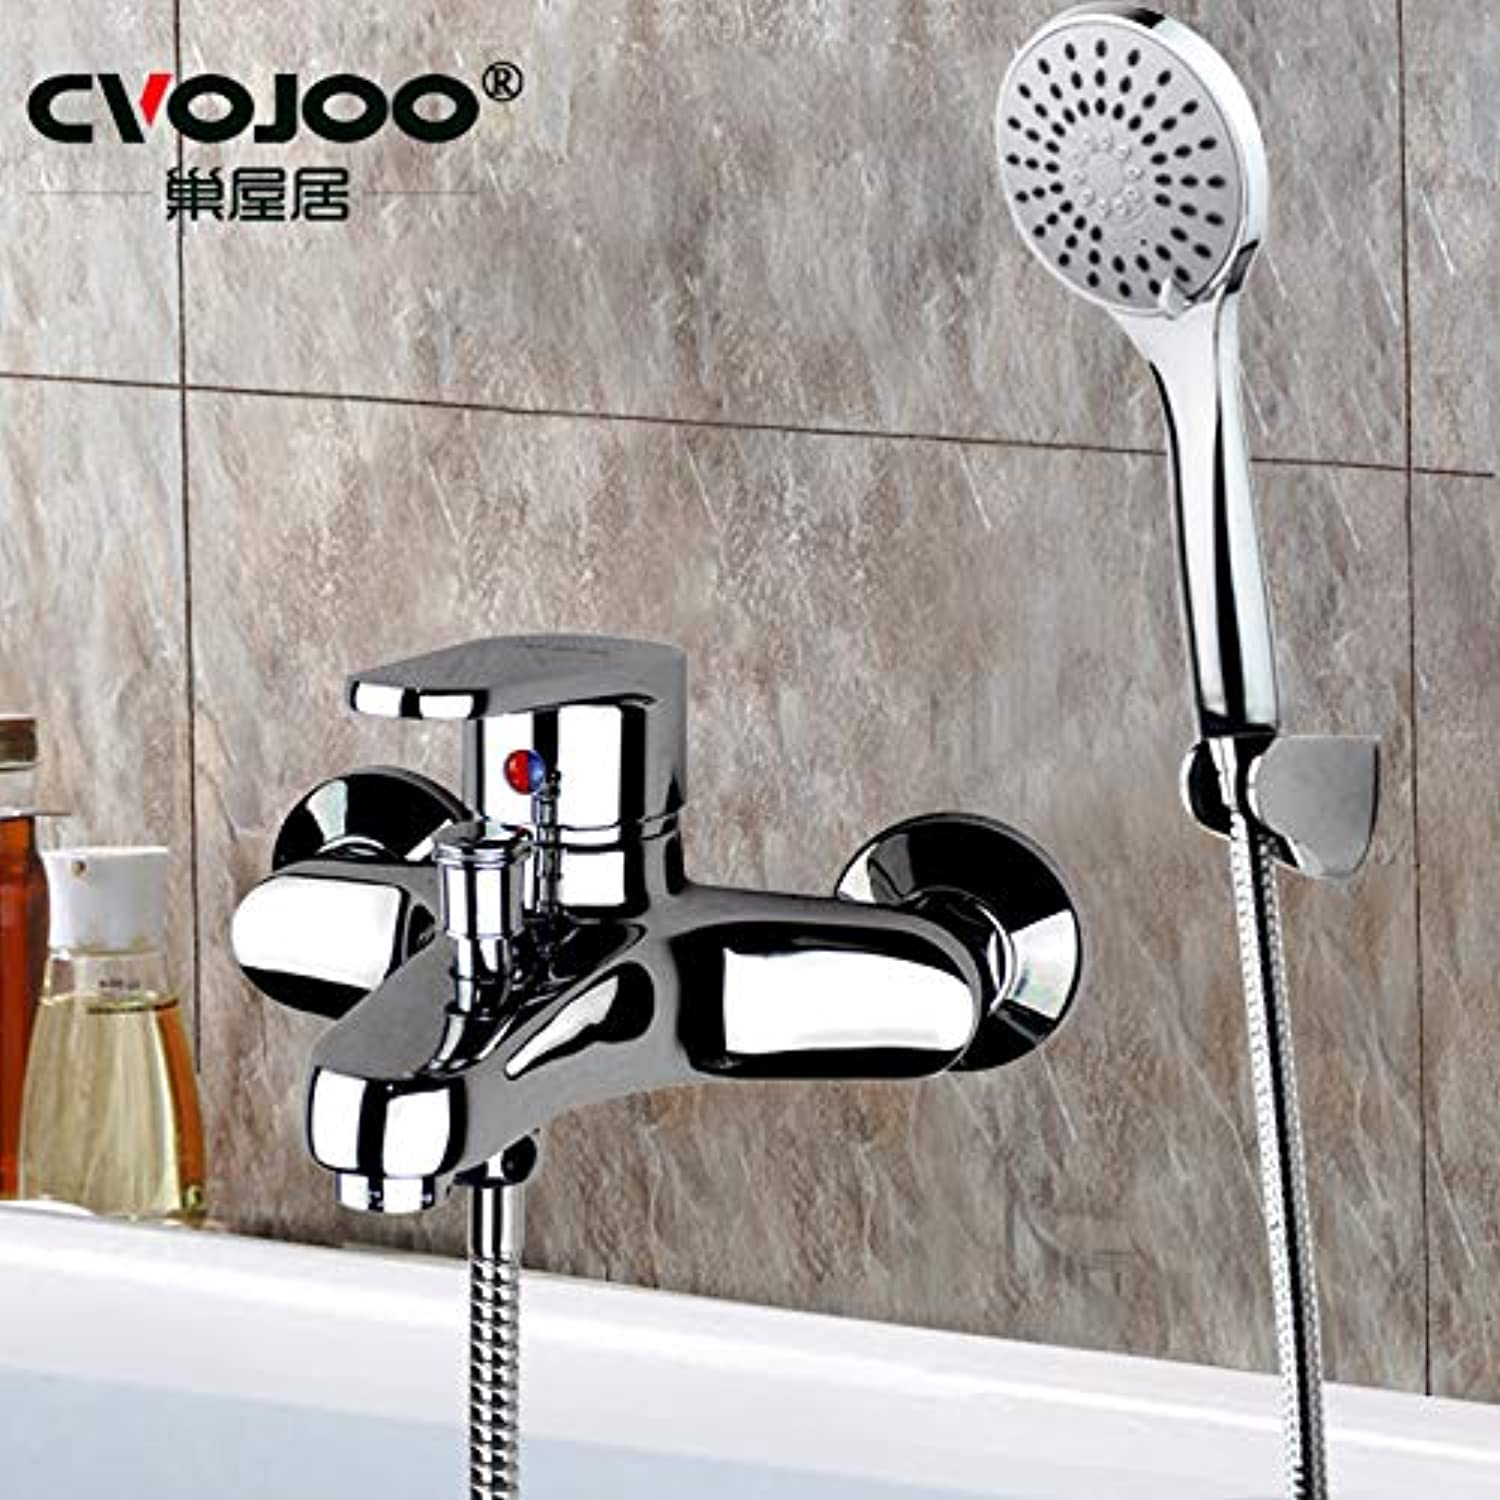 Lalaky Taps Faucet Kitchen Mixer Sink Waterfall Bathroom Mixer Basin Mixer Tap for Kitchen Bathroom and Washroom Copper Hot and Cold Water Heater Mixing Valve Nozzle